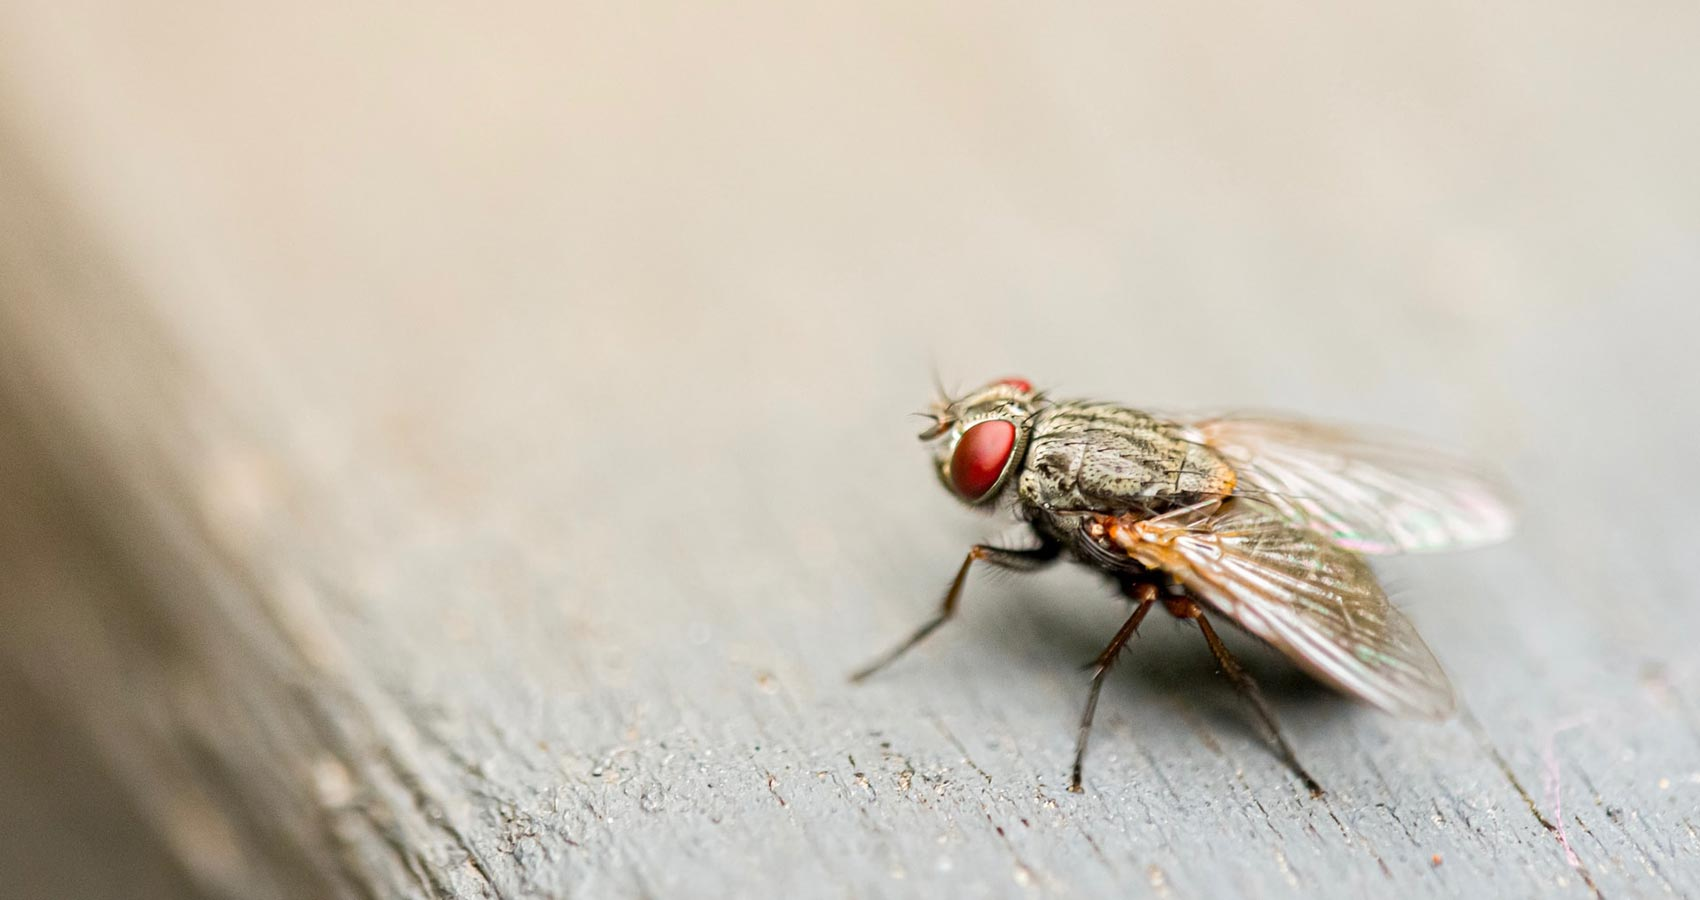 Merely A Fly, a poem written by Jane Briganti at Spillwords.com